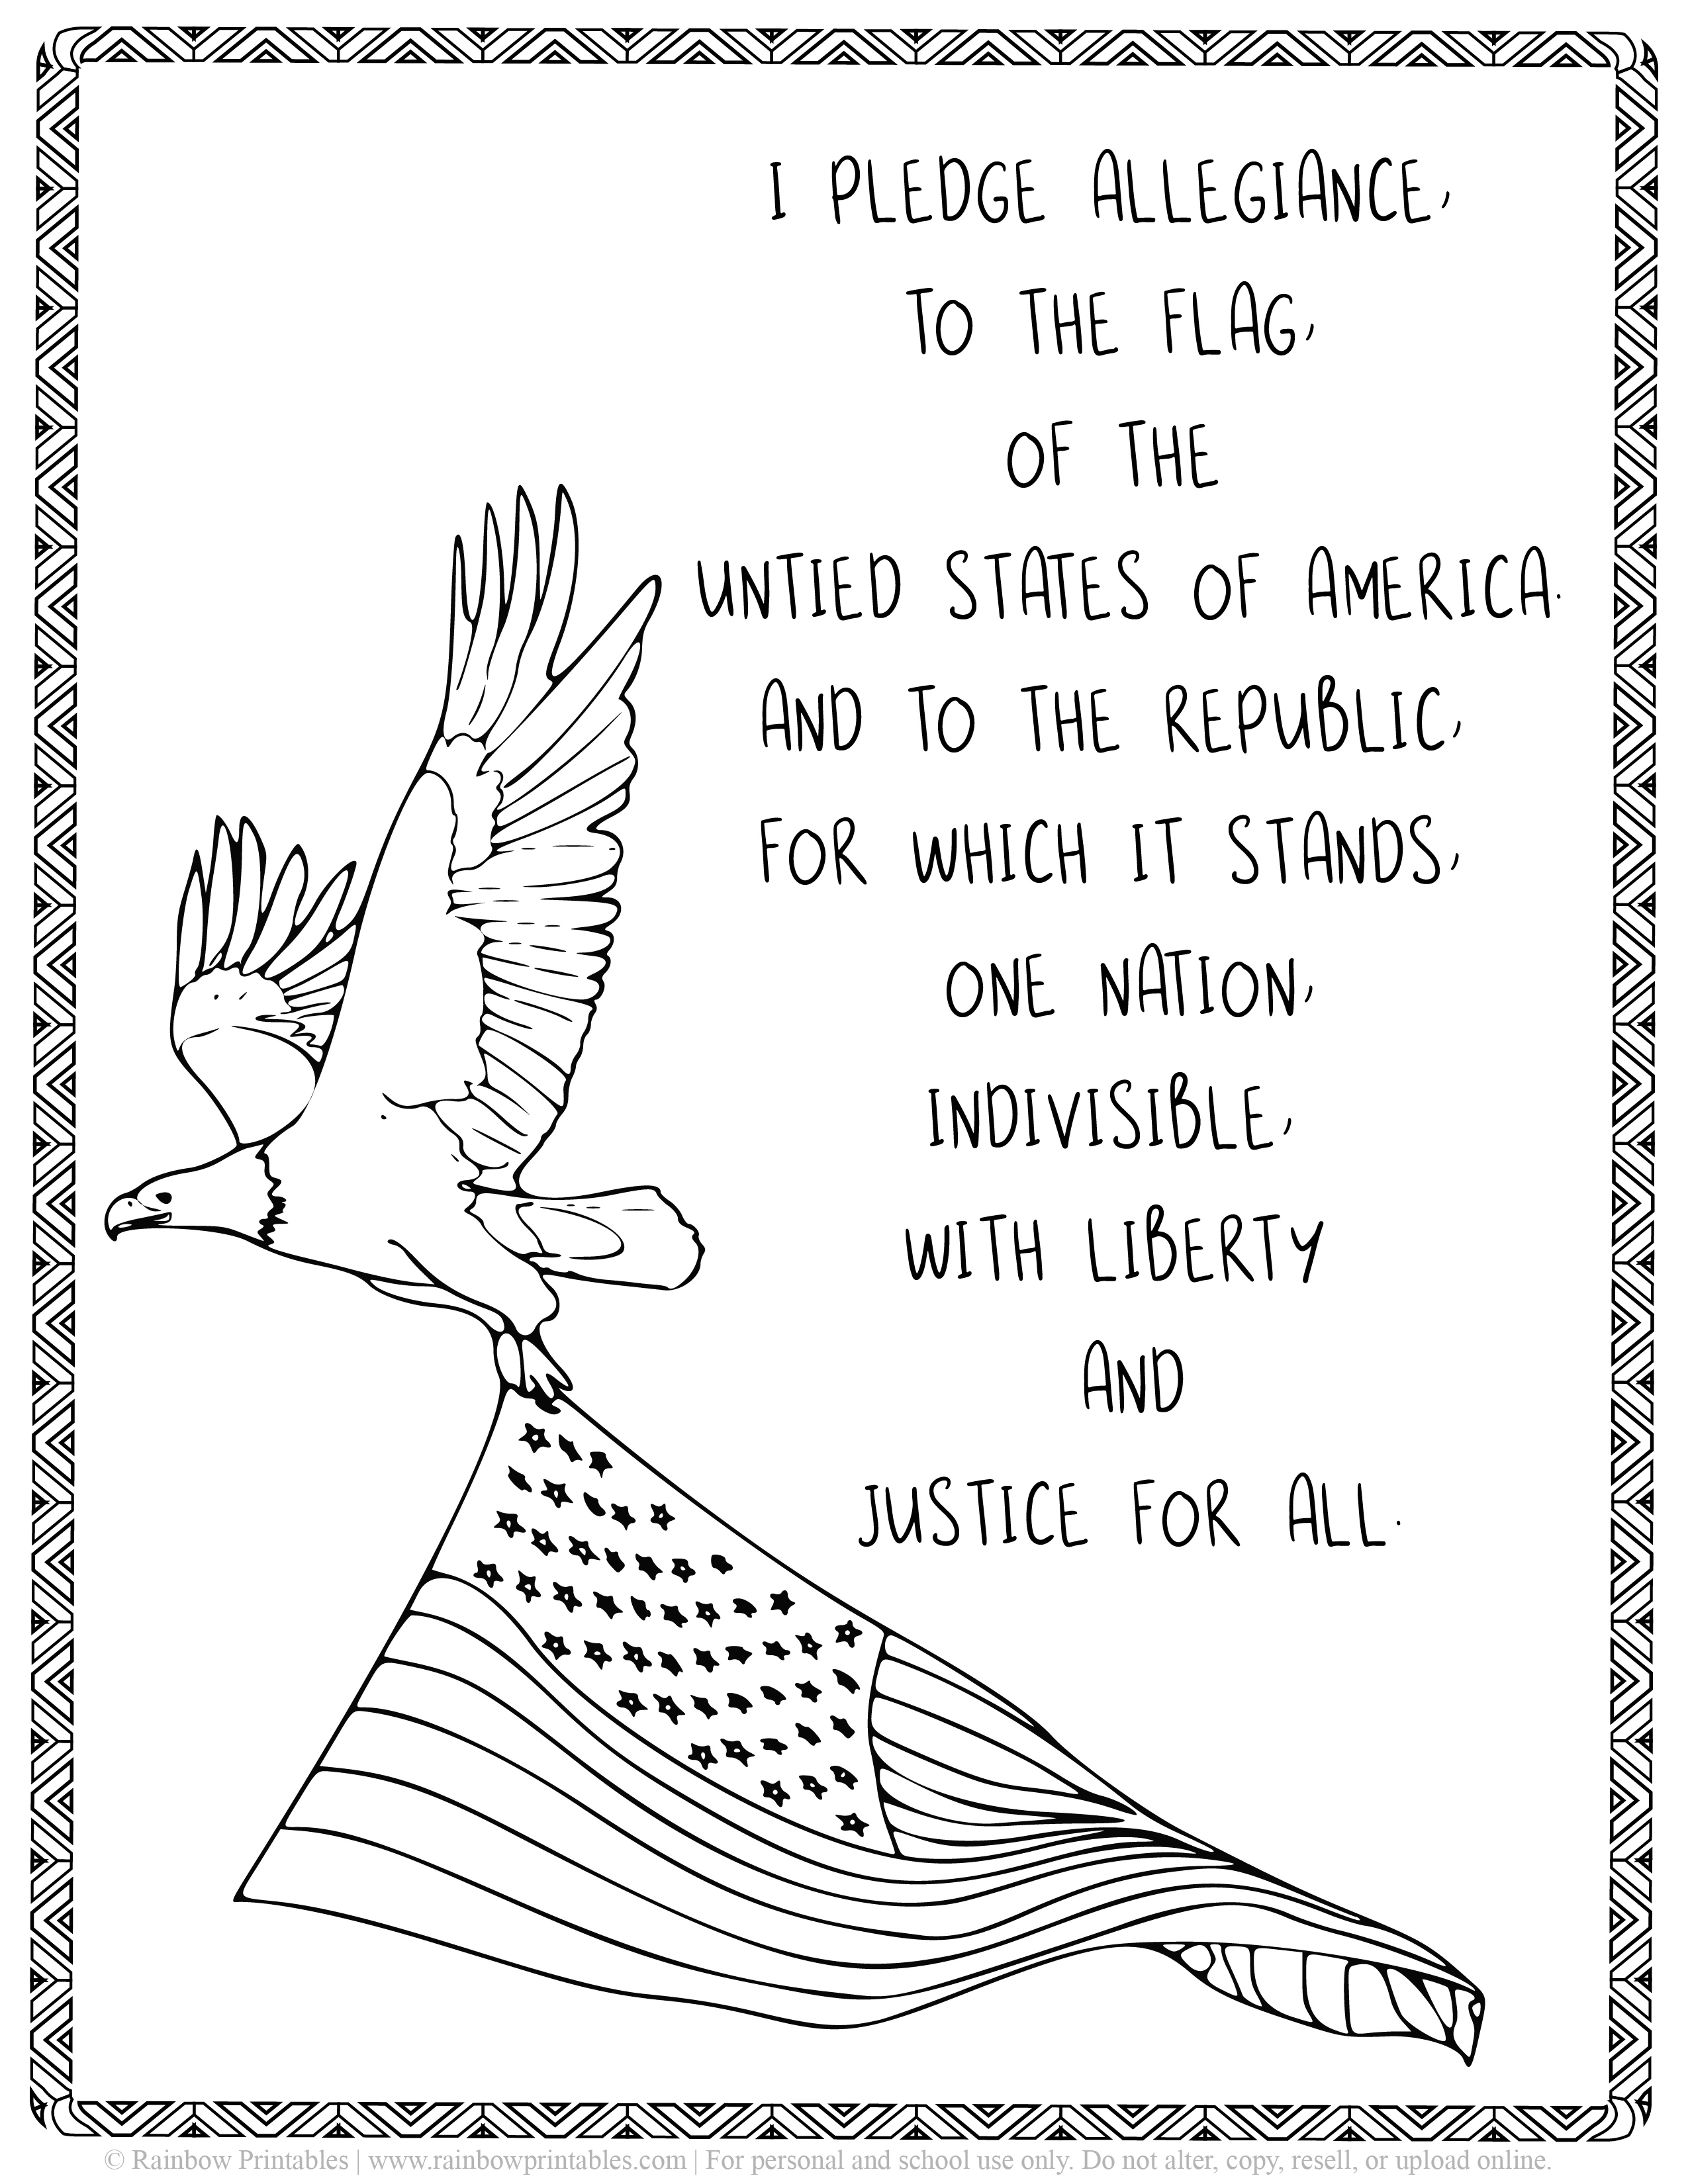 Kids Patriotic July 4th independence Day America Printables Eagle US National Anthem Print Out Black White Coloring Page